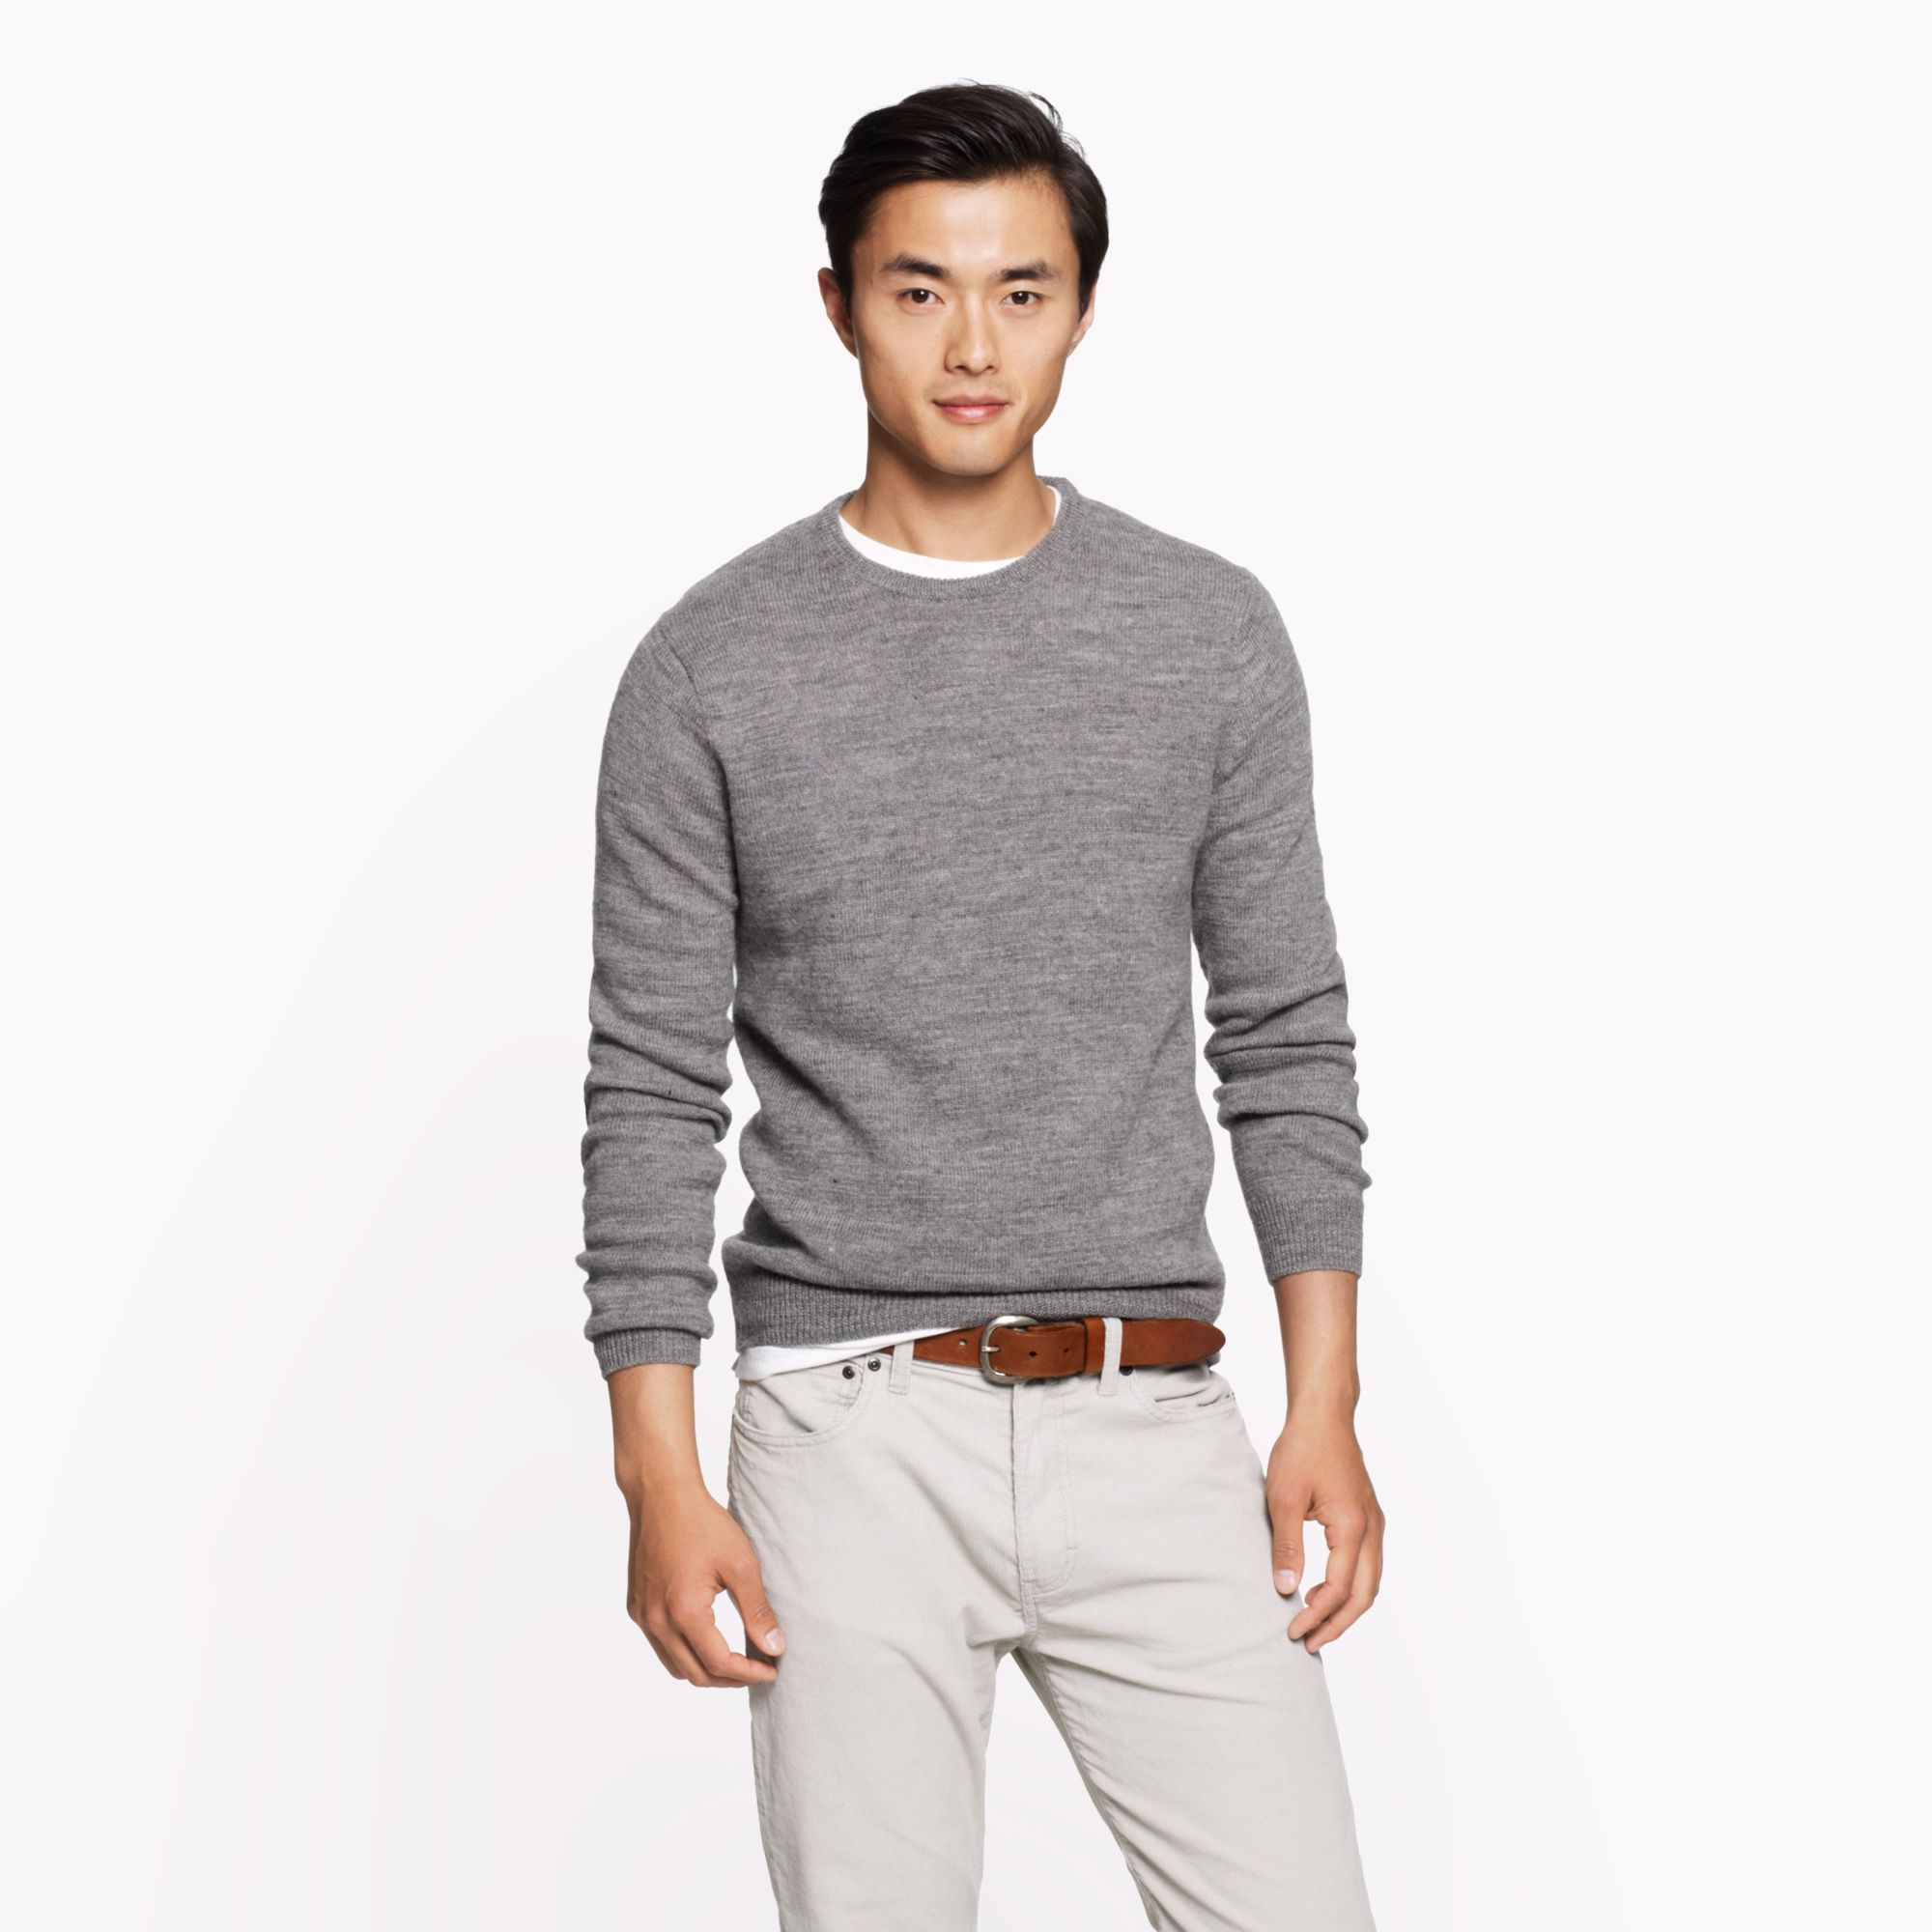 Rustic merino elbow patch sweater in gray for men for J crew mens outfits